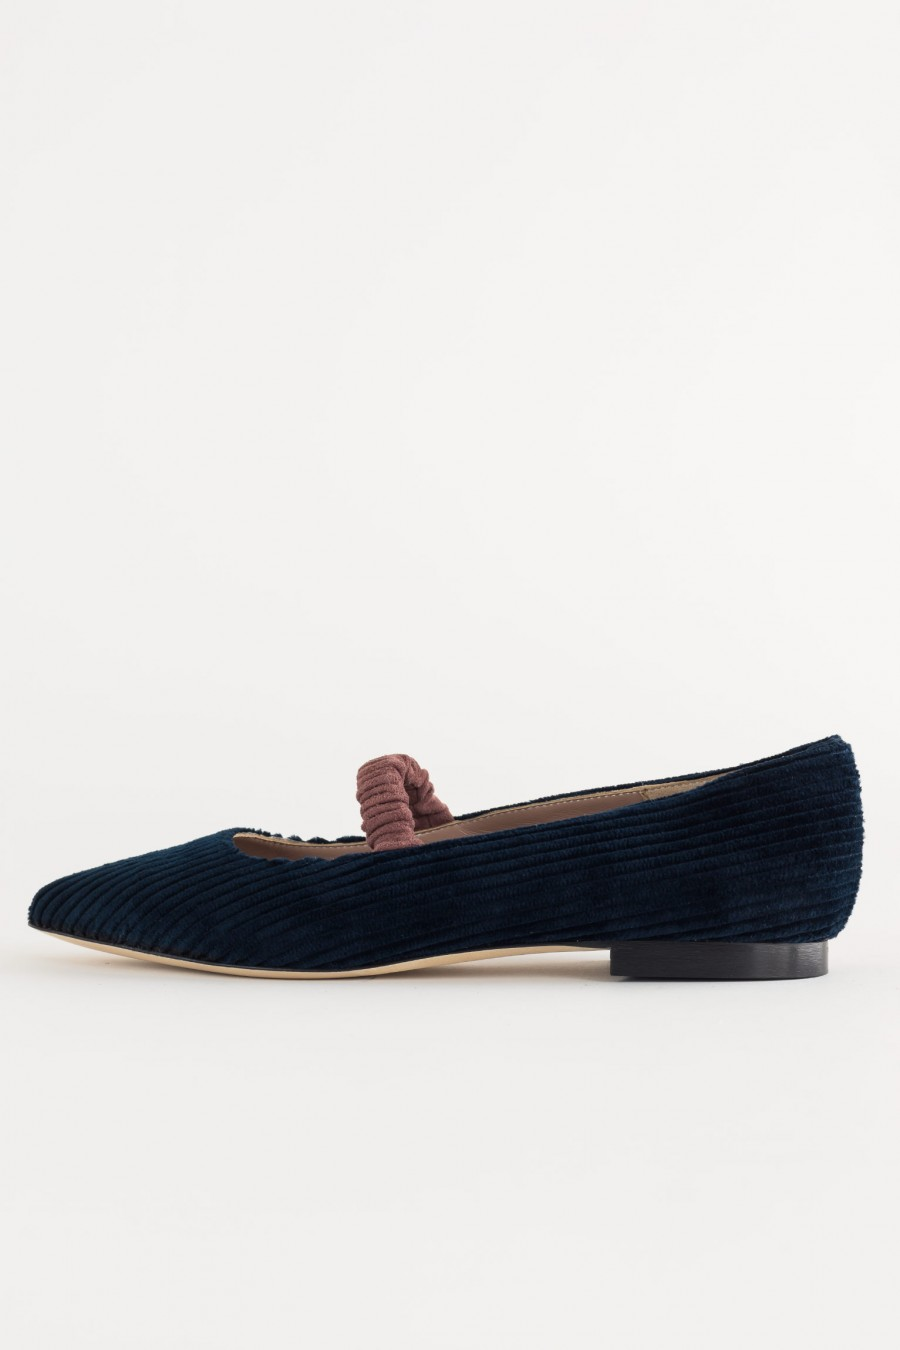 Flats with elastic band detail